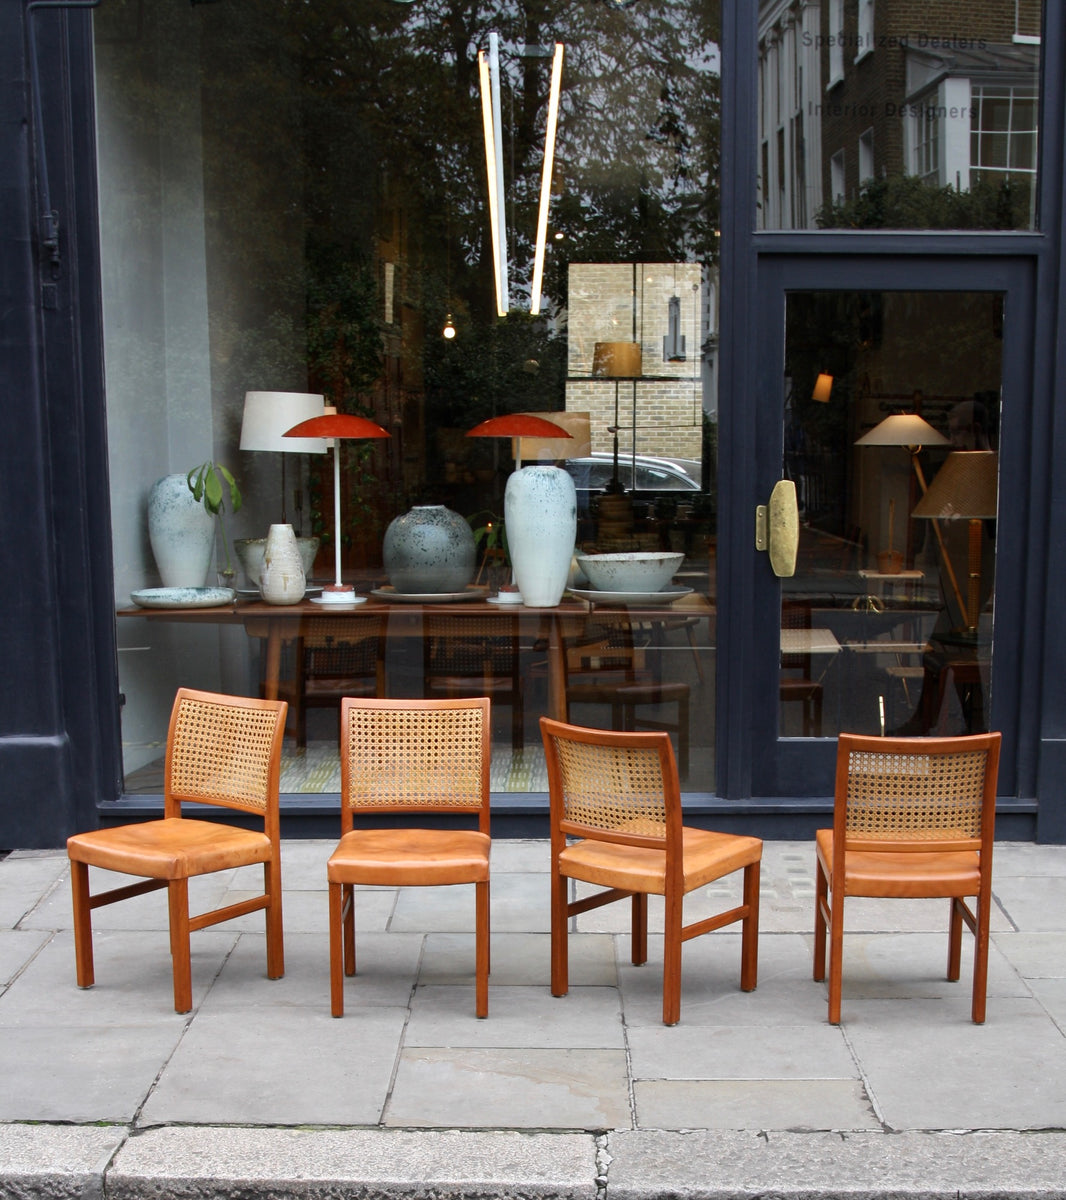 Four Teak, Leather & Cane Chairs Carl-Gustav Hiort af Ornäs  - Image 1